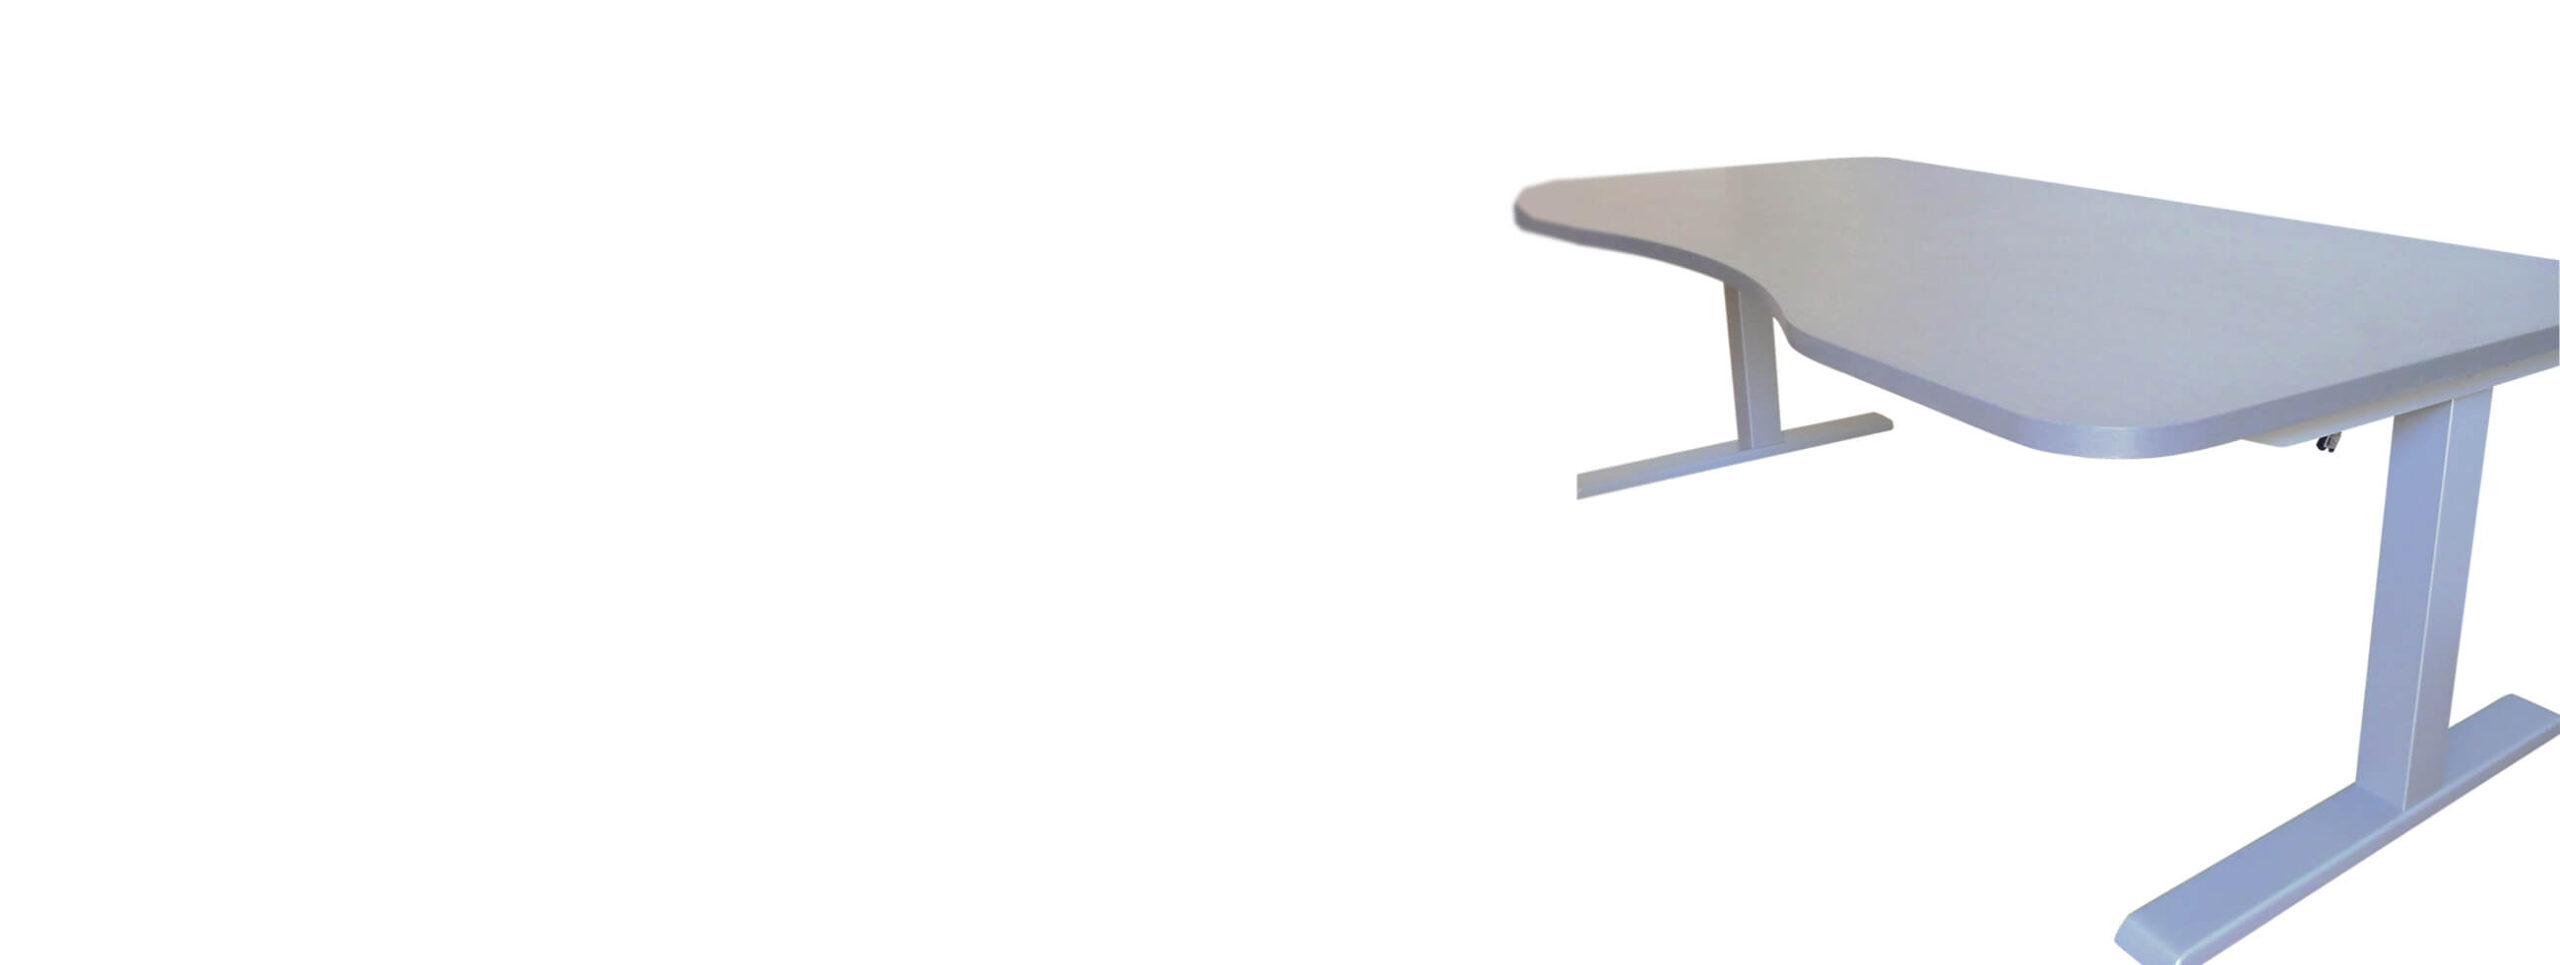 color-white-DL-17-Standing-Desk-Australia-with-a-background-of-white